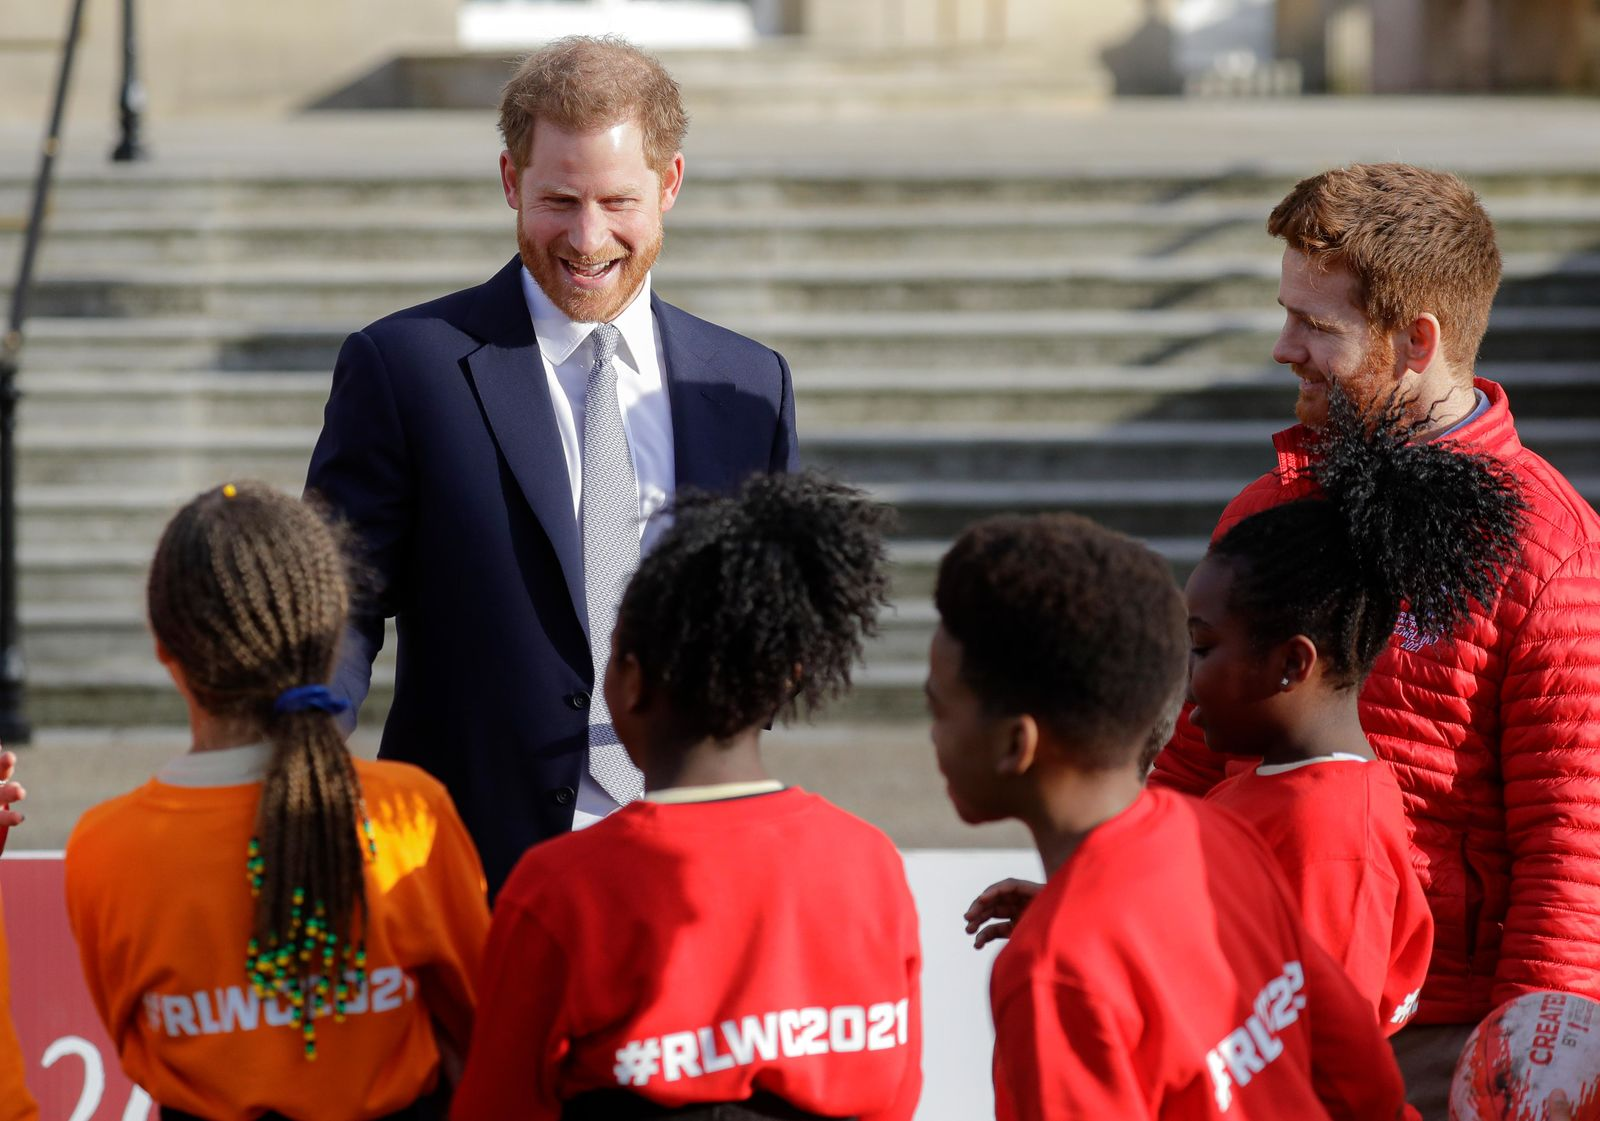 Britain's Prince Harry smiles at schoolchildren in the gardens at Buckingham Palace in London, Thursday, Jan. 16, 2020.{ } (AP Photo/Kirsty Wigglesworth)